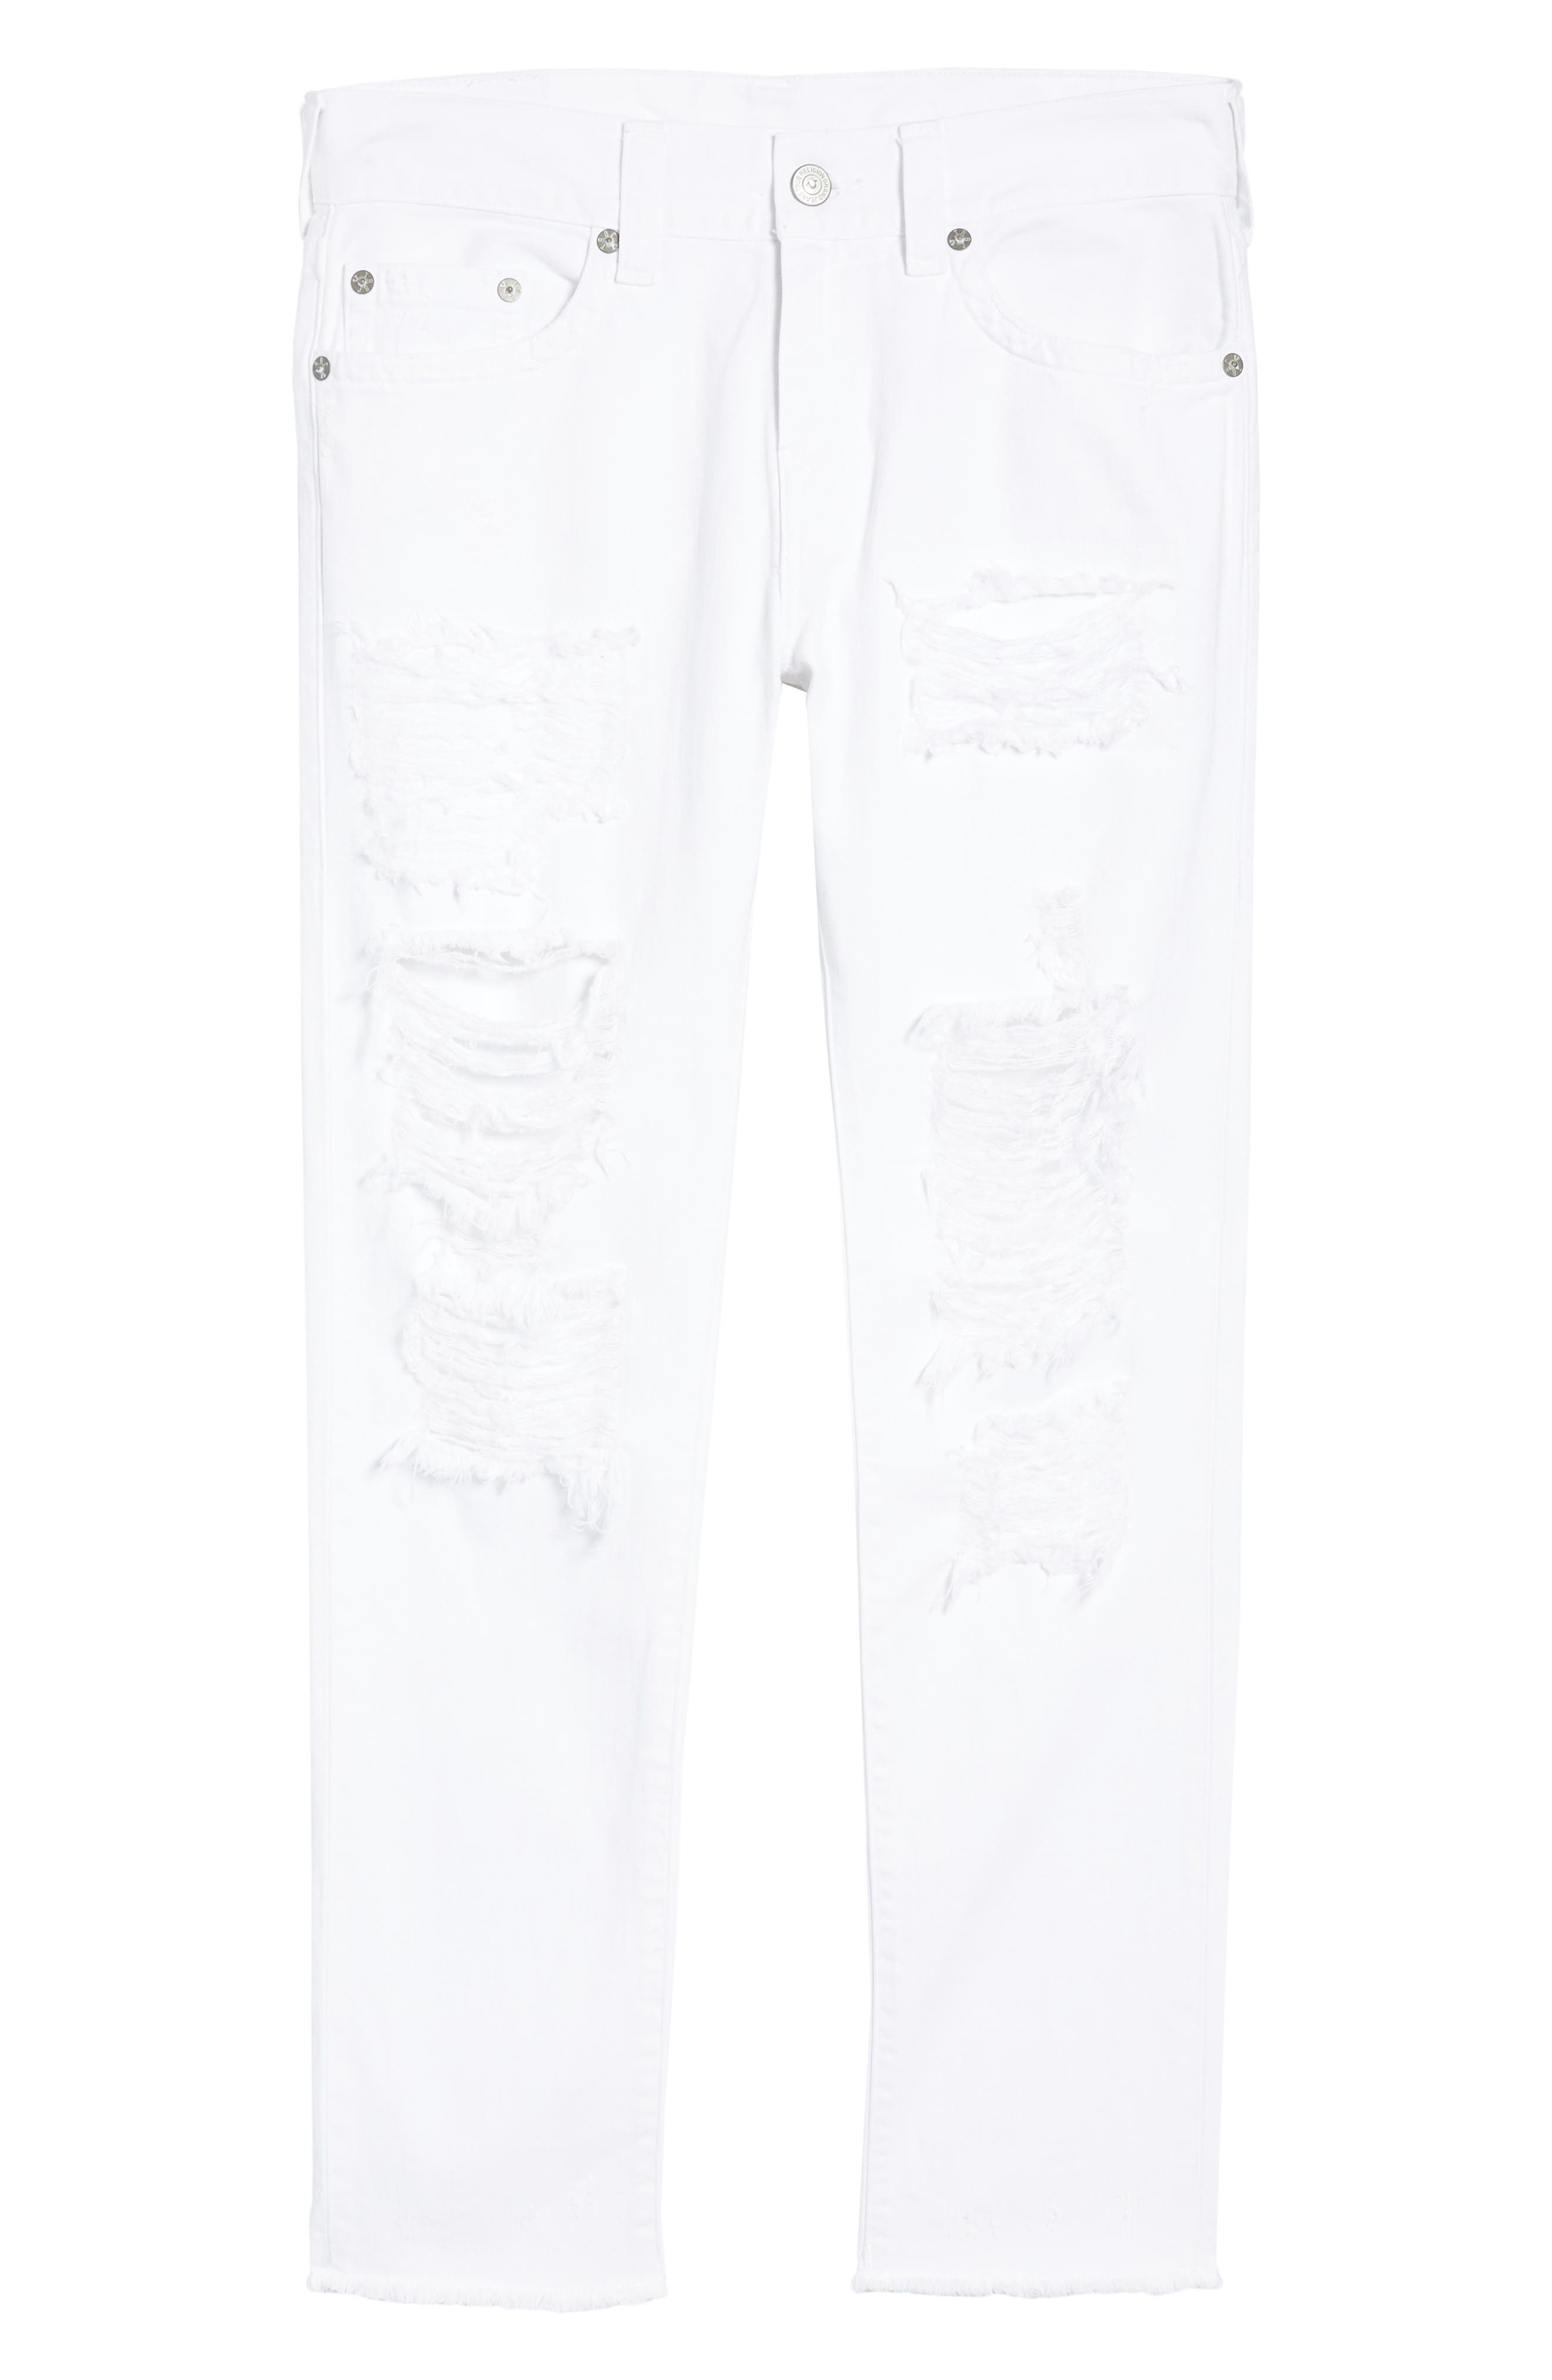 Rocco Skinny Fit jeans,                             Alternate thumbnail 6, color,                             WHITE VOLCANIC ASH